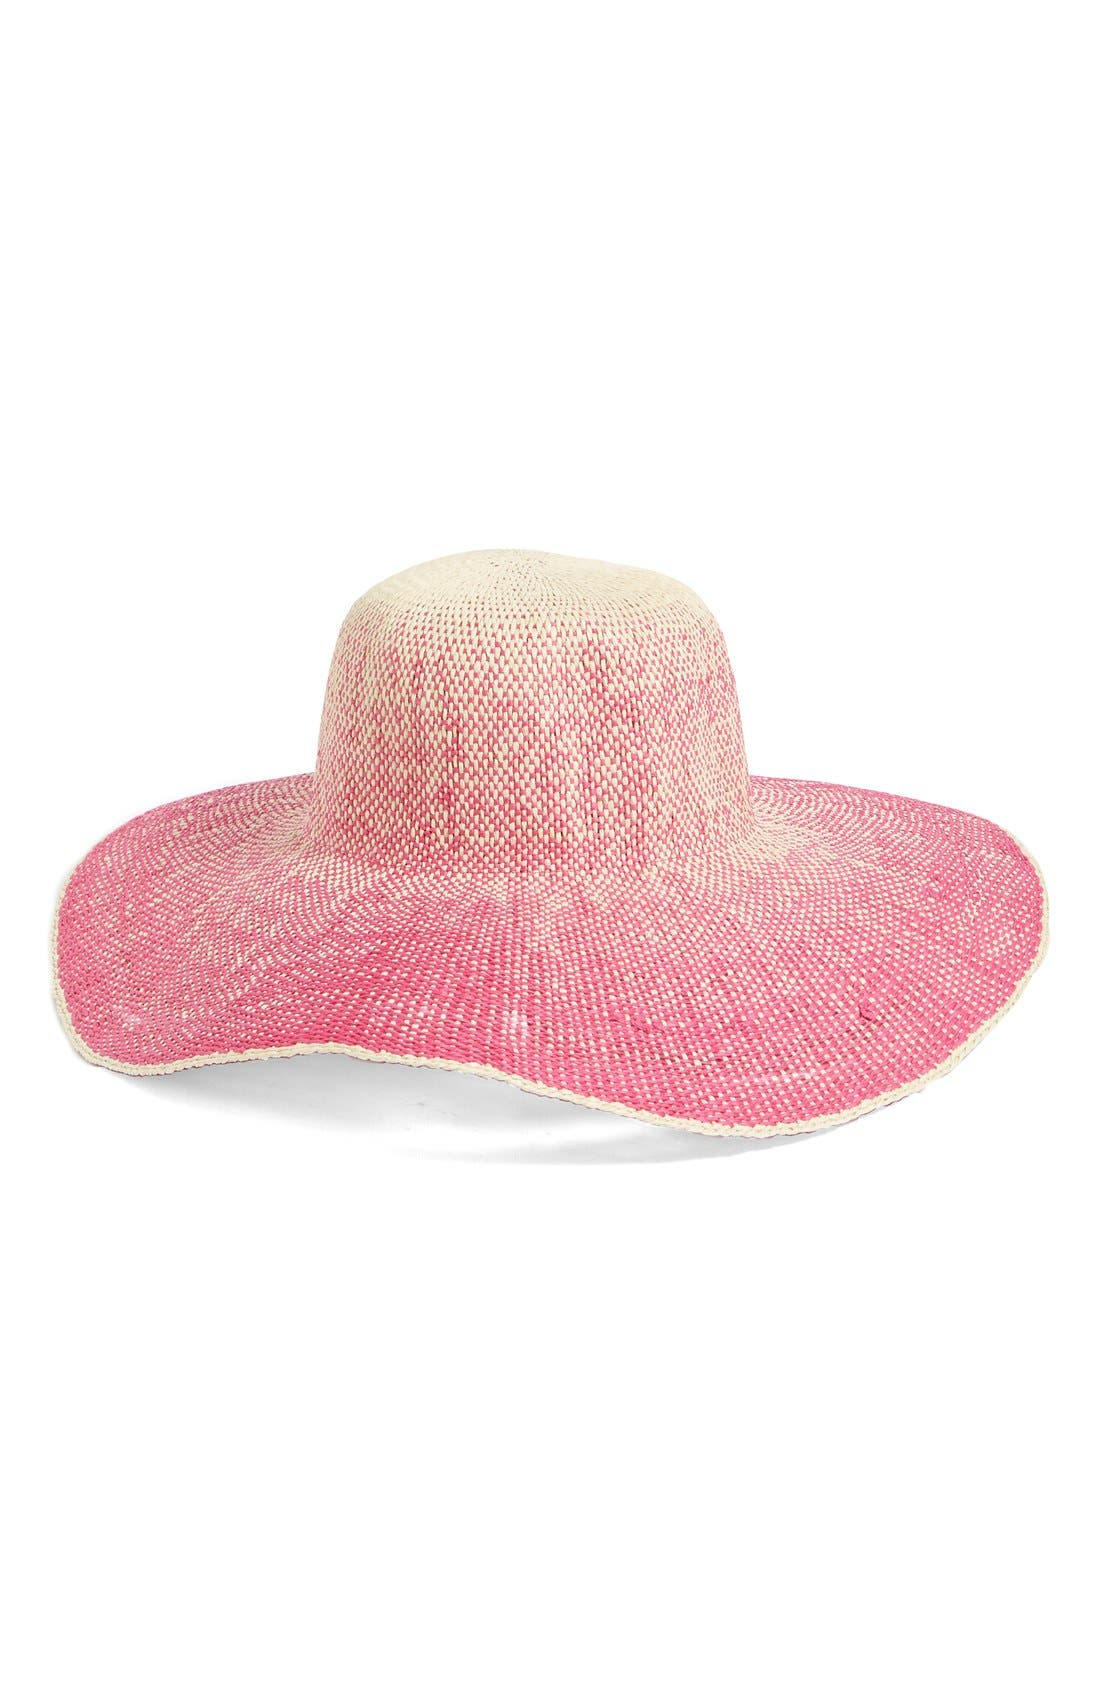 Alternate Image 1 Selected - San Diego Hat Ombré Wide Brim Sun Hat